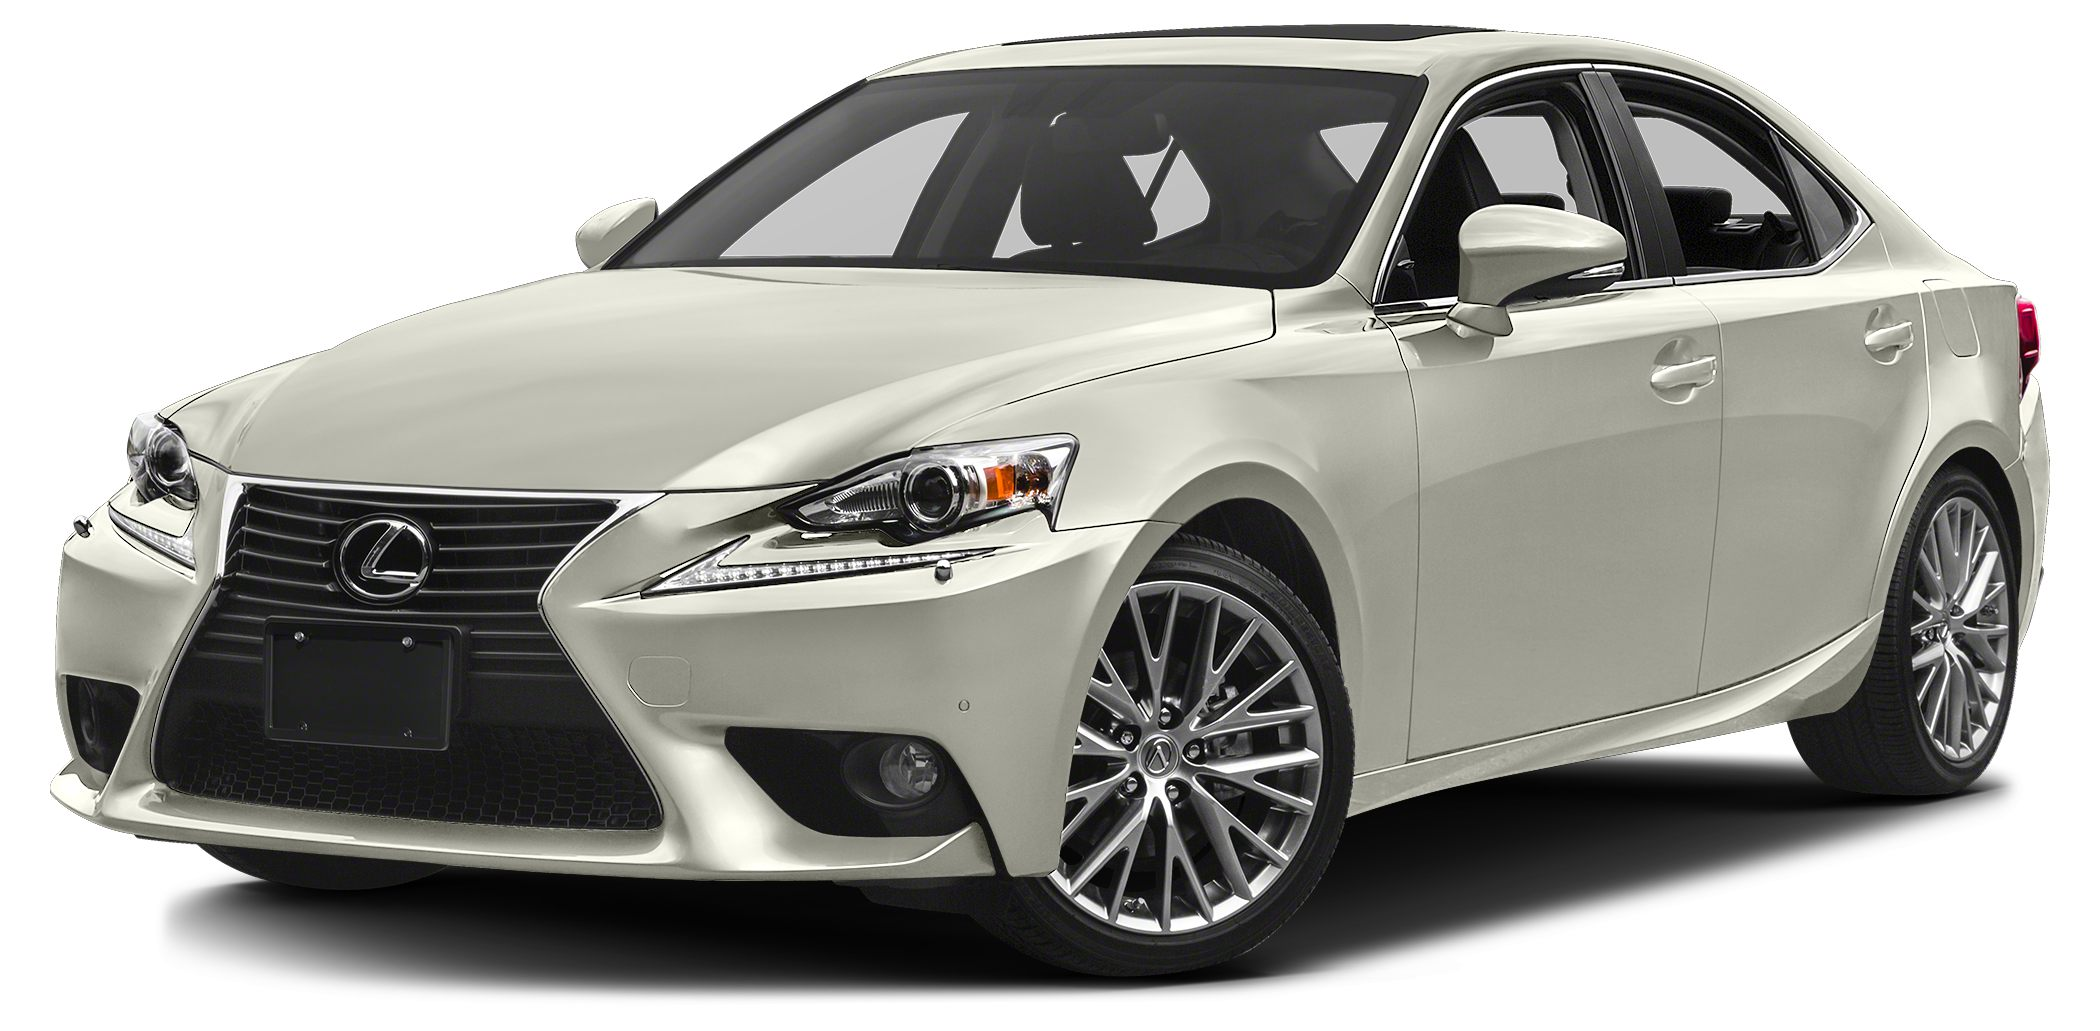 2014 Lexus IS 250 Base This 2014 Lexus IS 250 4dr 4dr Sport Sedan Automatic RWD features a 25L V6